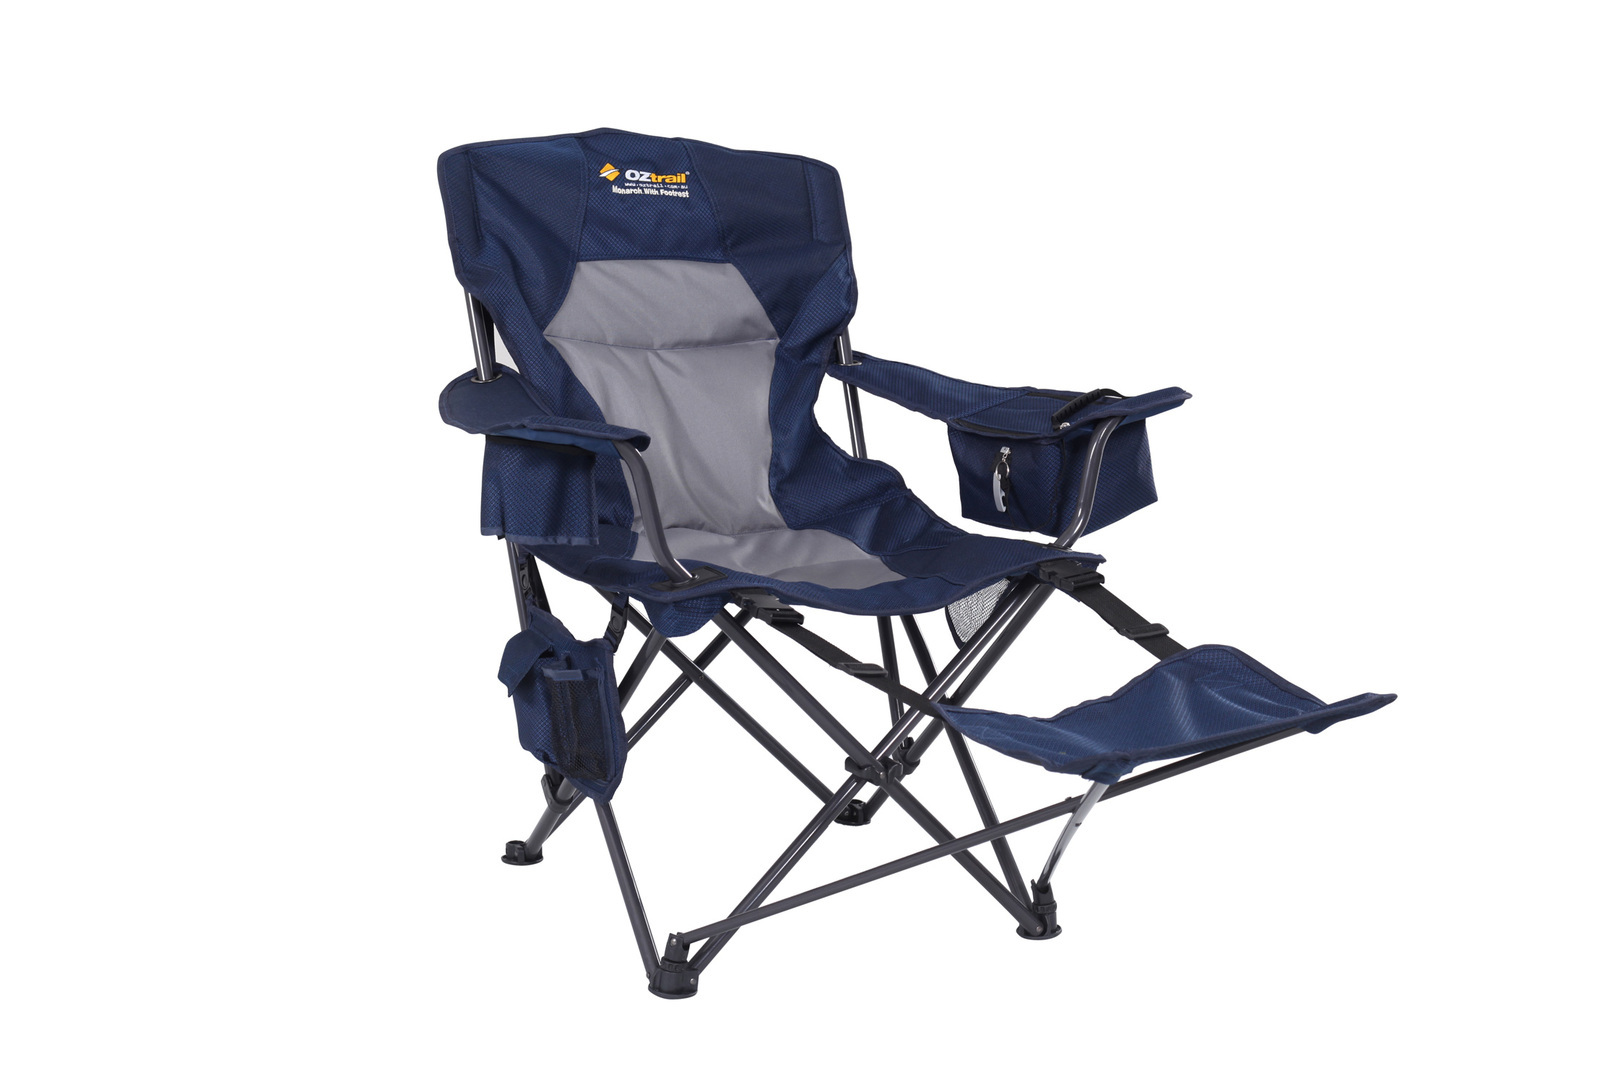 Camping Chair With Footrest Oztrail Monarch Footrest Chair Tentworld